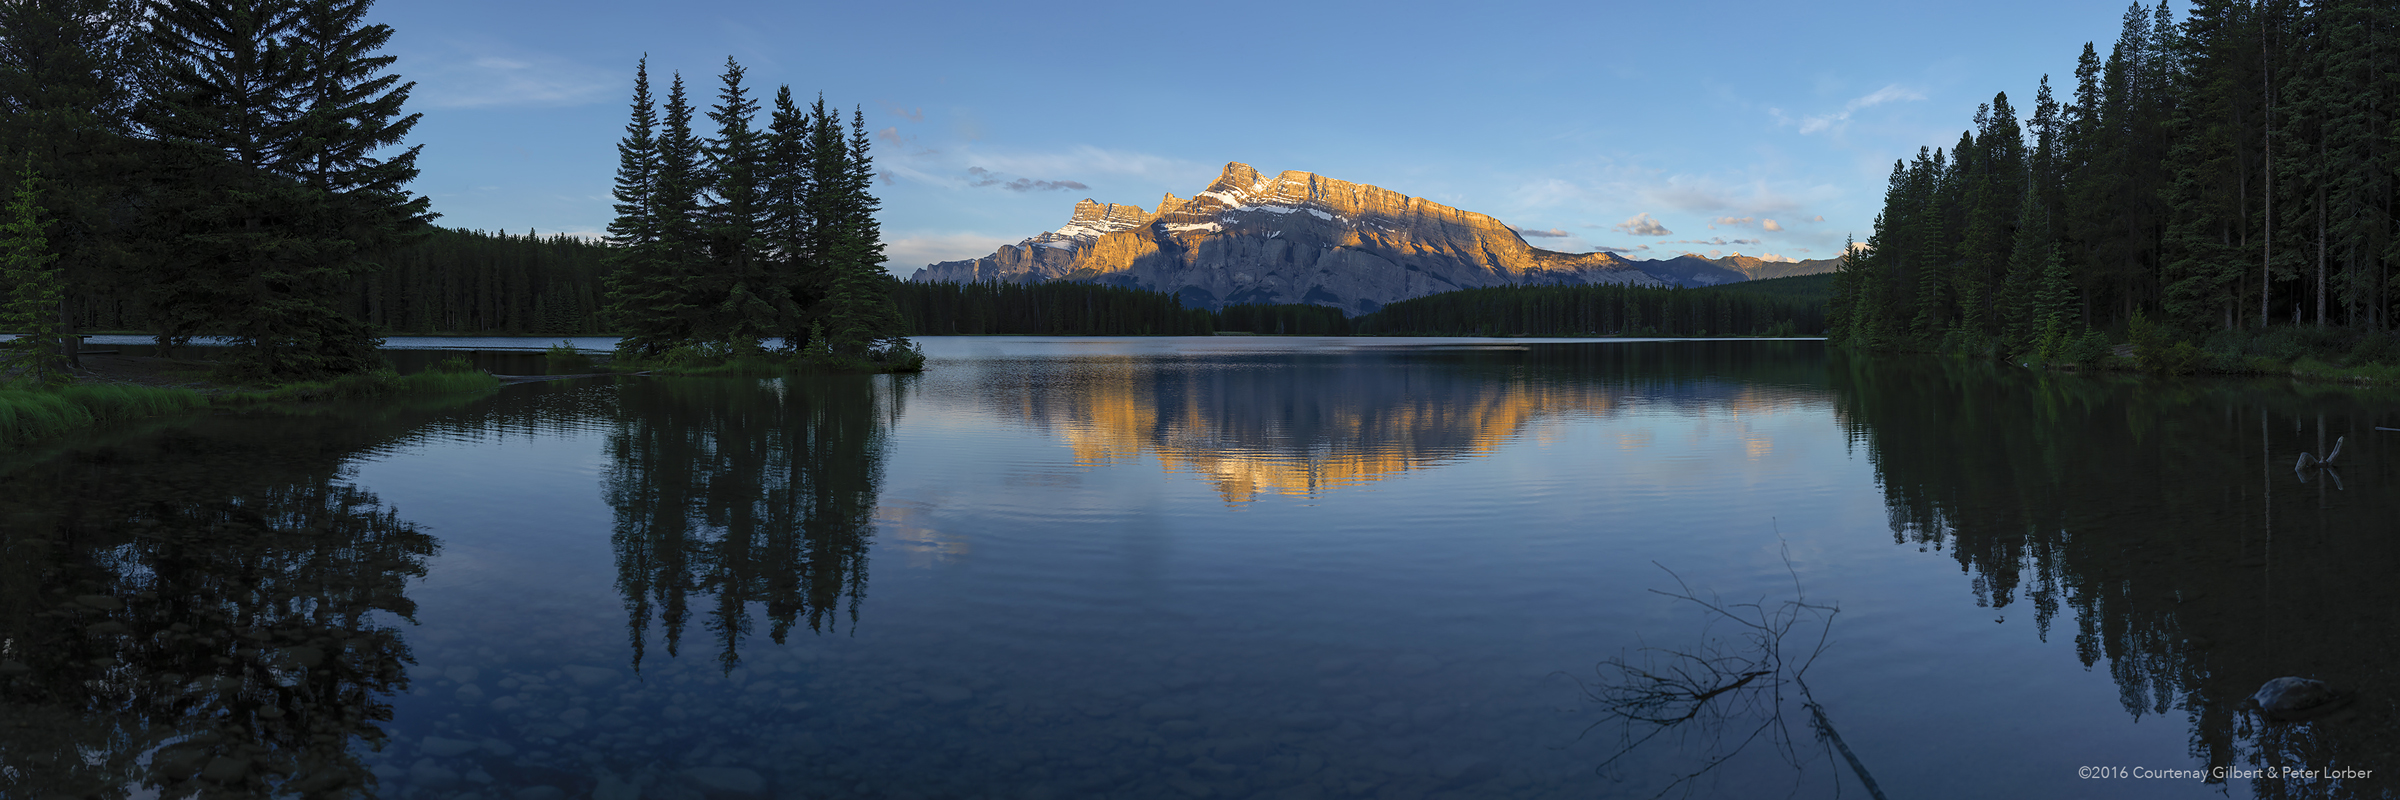 Two Jack Lake, Banff, Canada